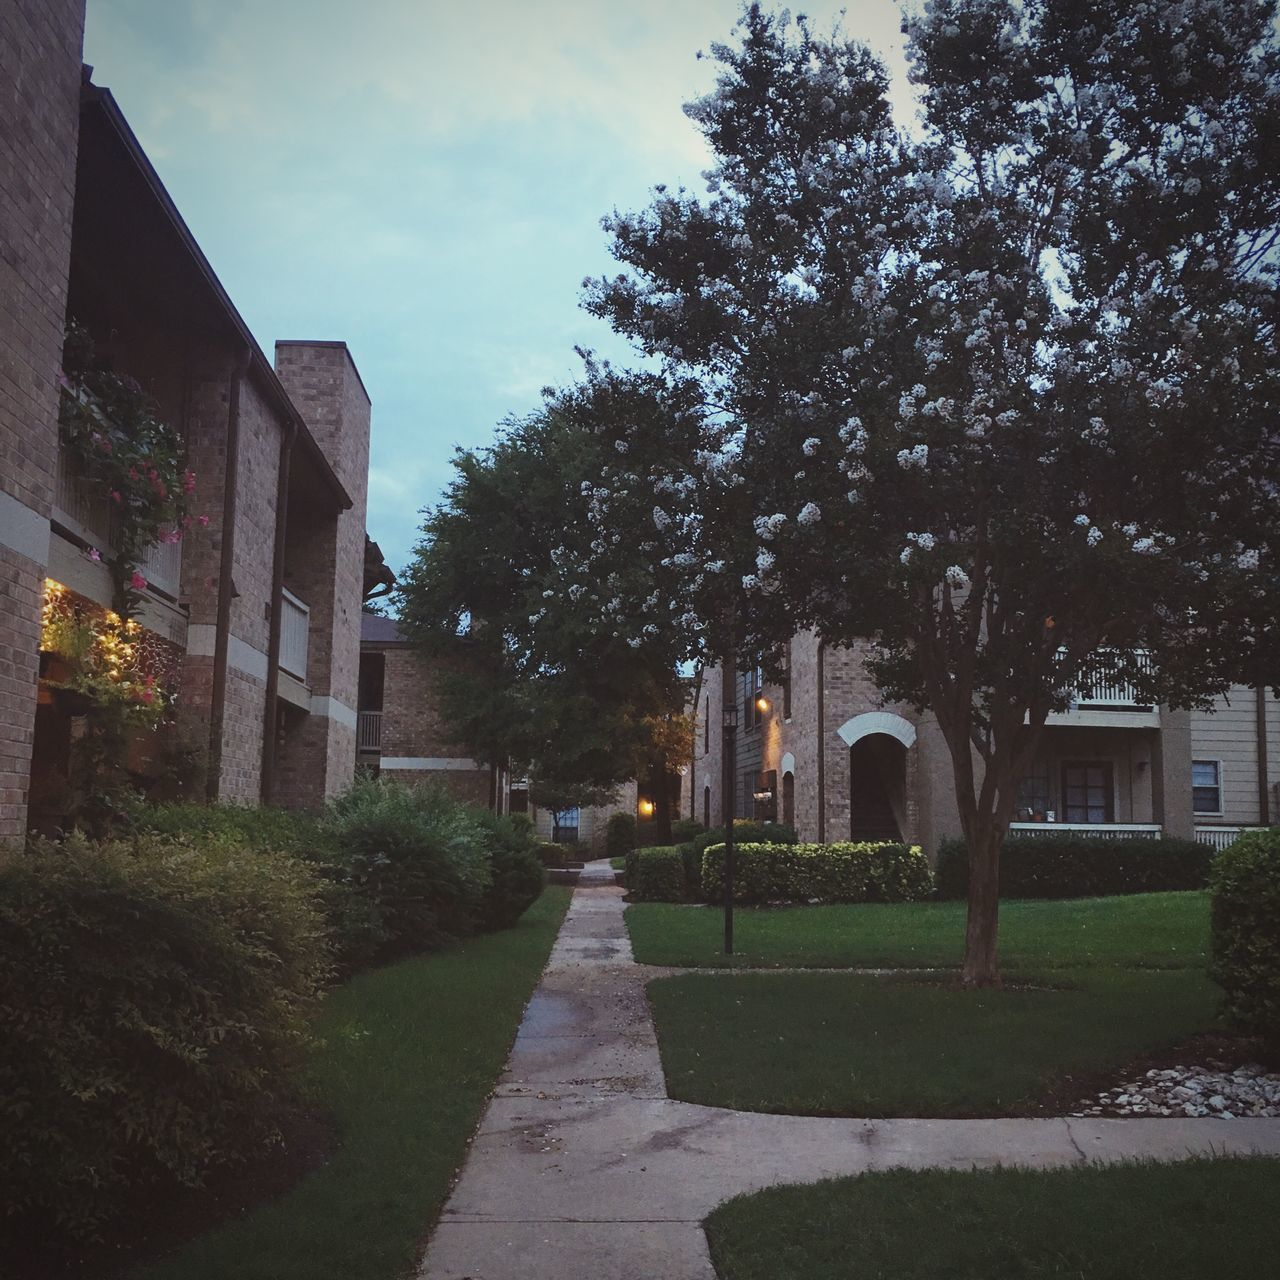 tree, architecture, building exterior, built structure, the way forward, sky, outdoors, no people, walkway, day, nature, grass